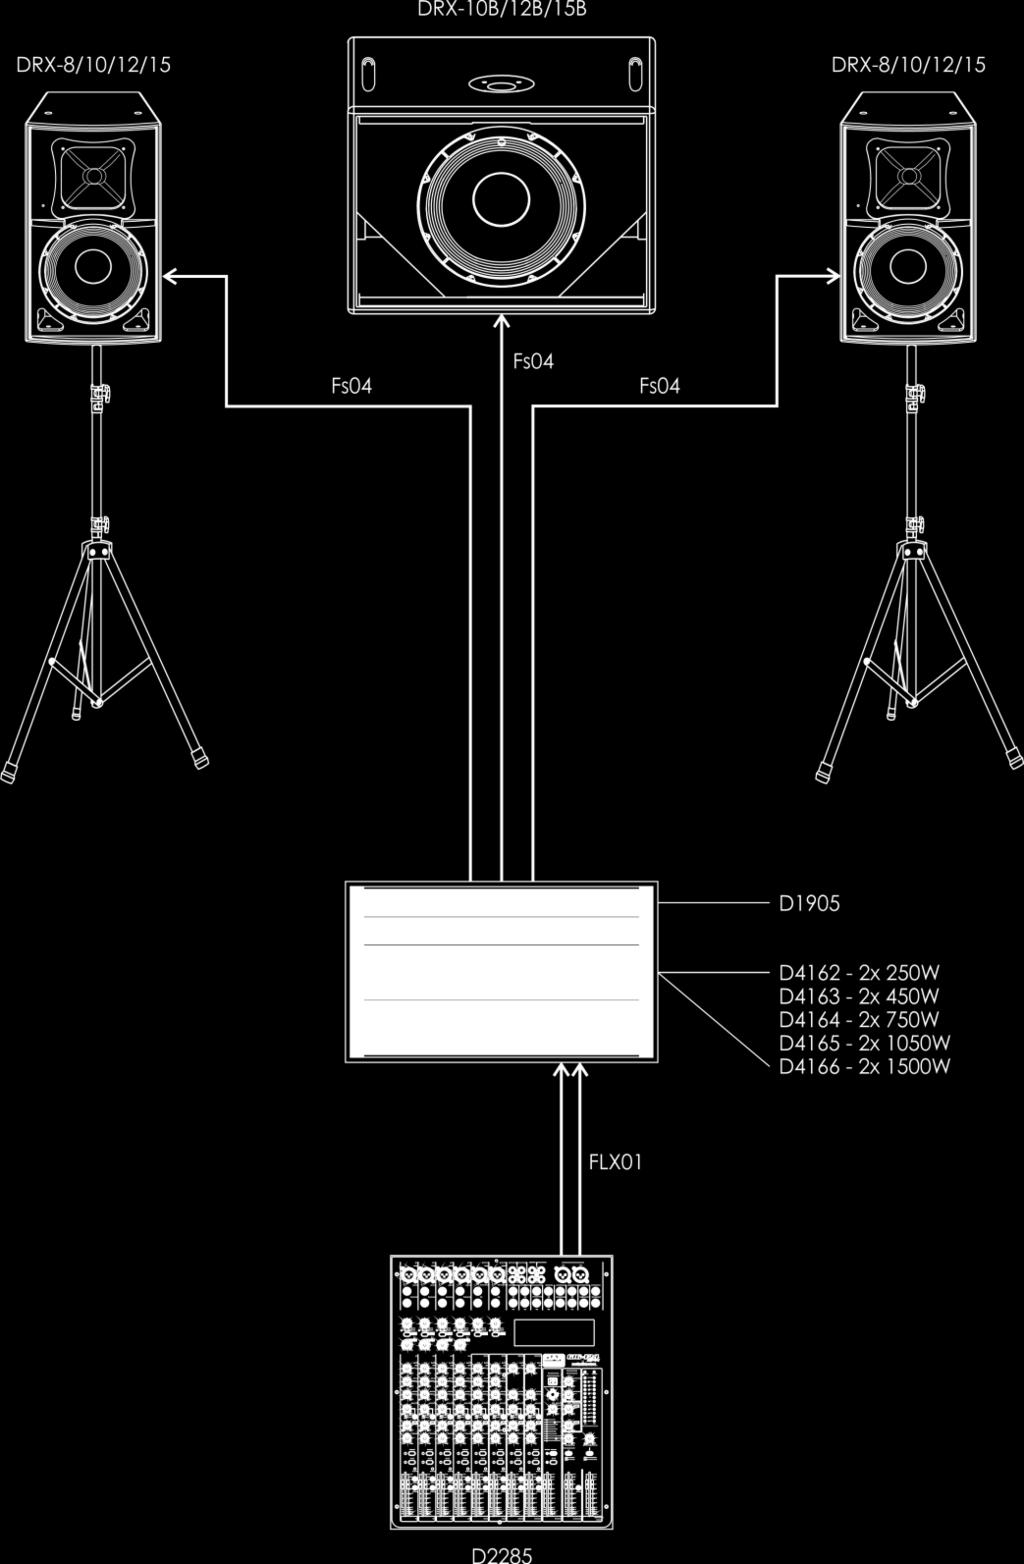 English Drx Passive Series Pdf Subwoofer Wiring Diagram One Two Satellite Speakers Make Your Initial Connections With All The Equipment